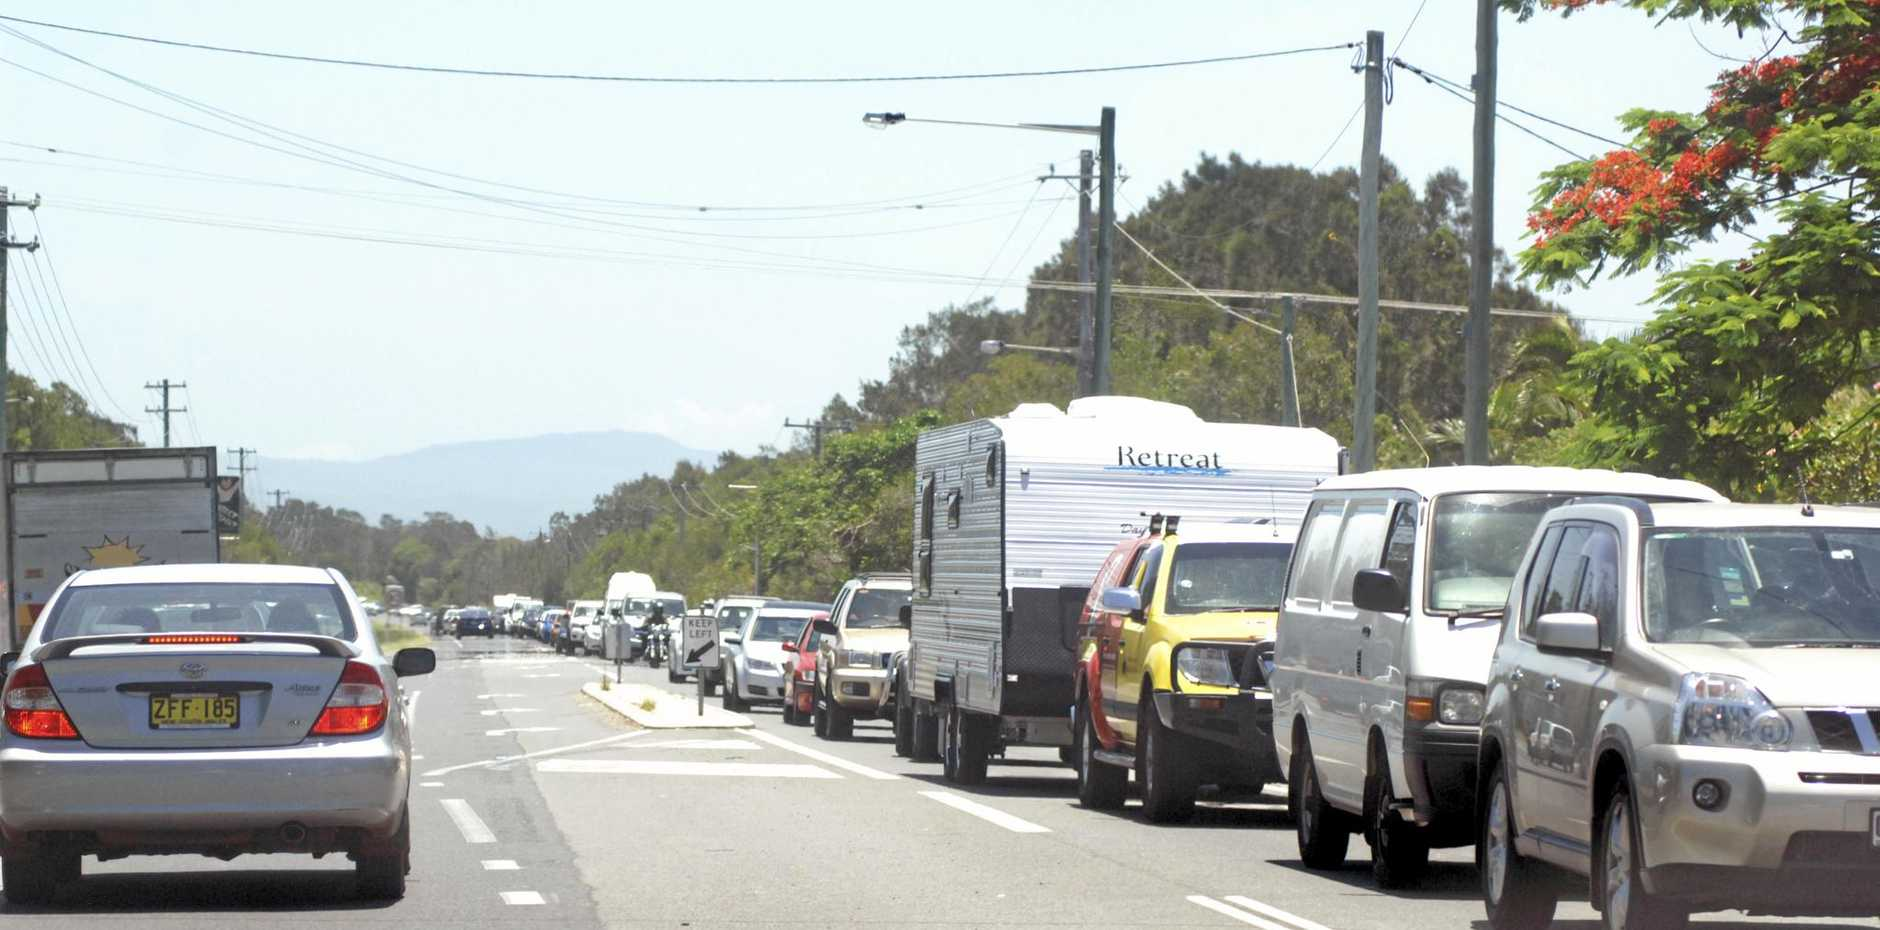 CROSS TOWN TRAFFIC: The usual long lines of traffic heading into into Byron Bay.